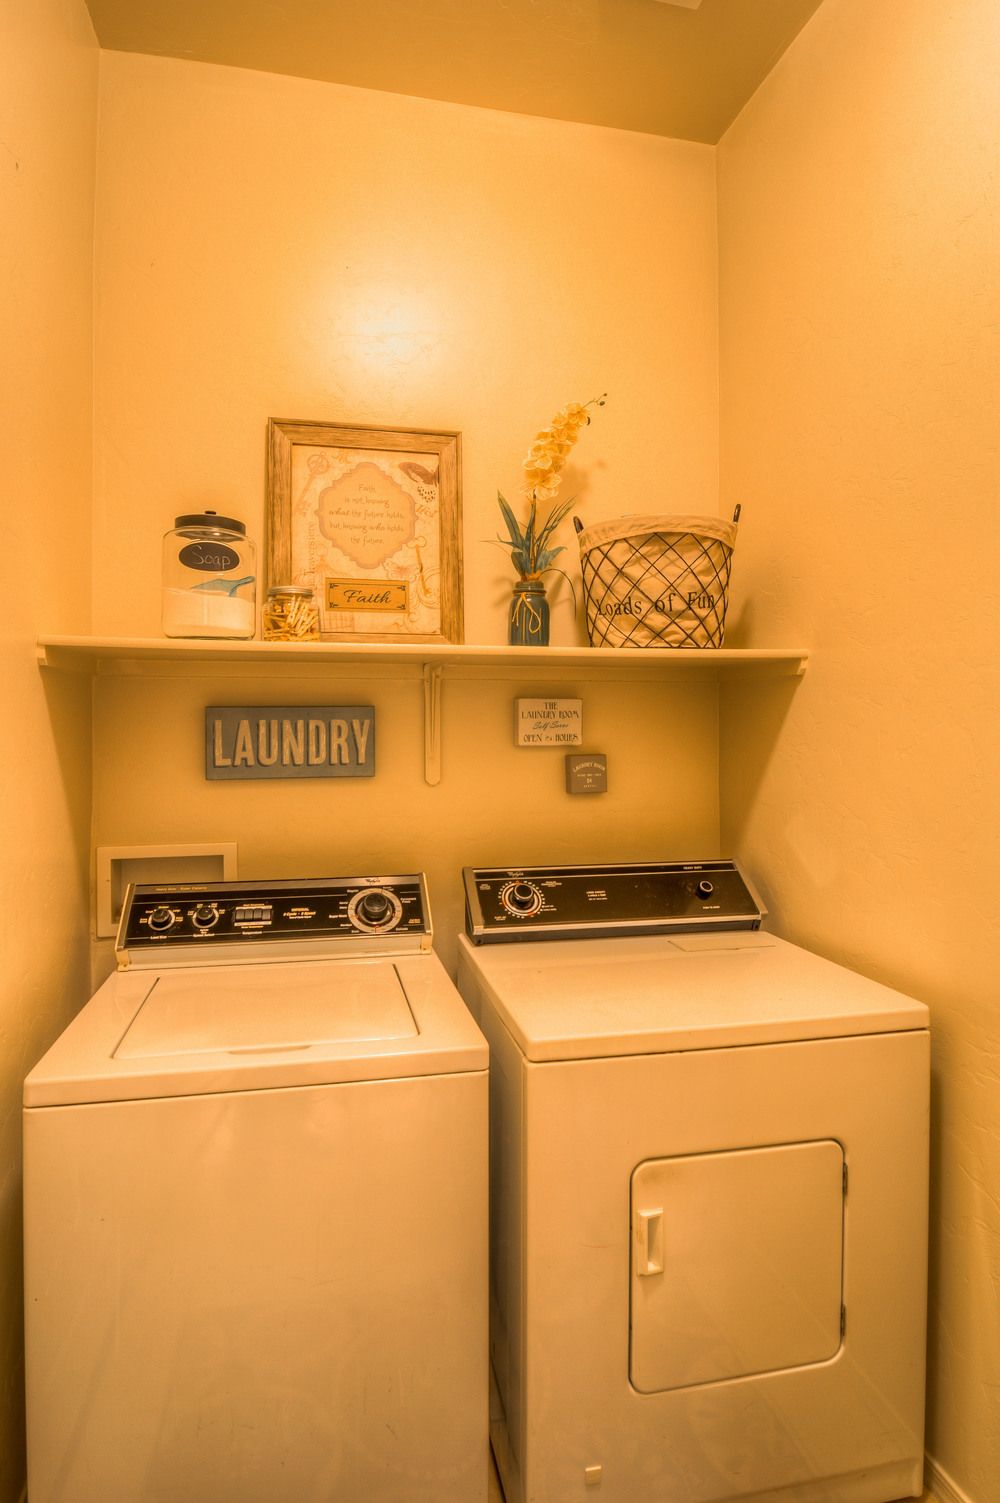 15 Laundry Room photo b.jpg